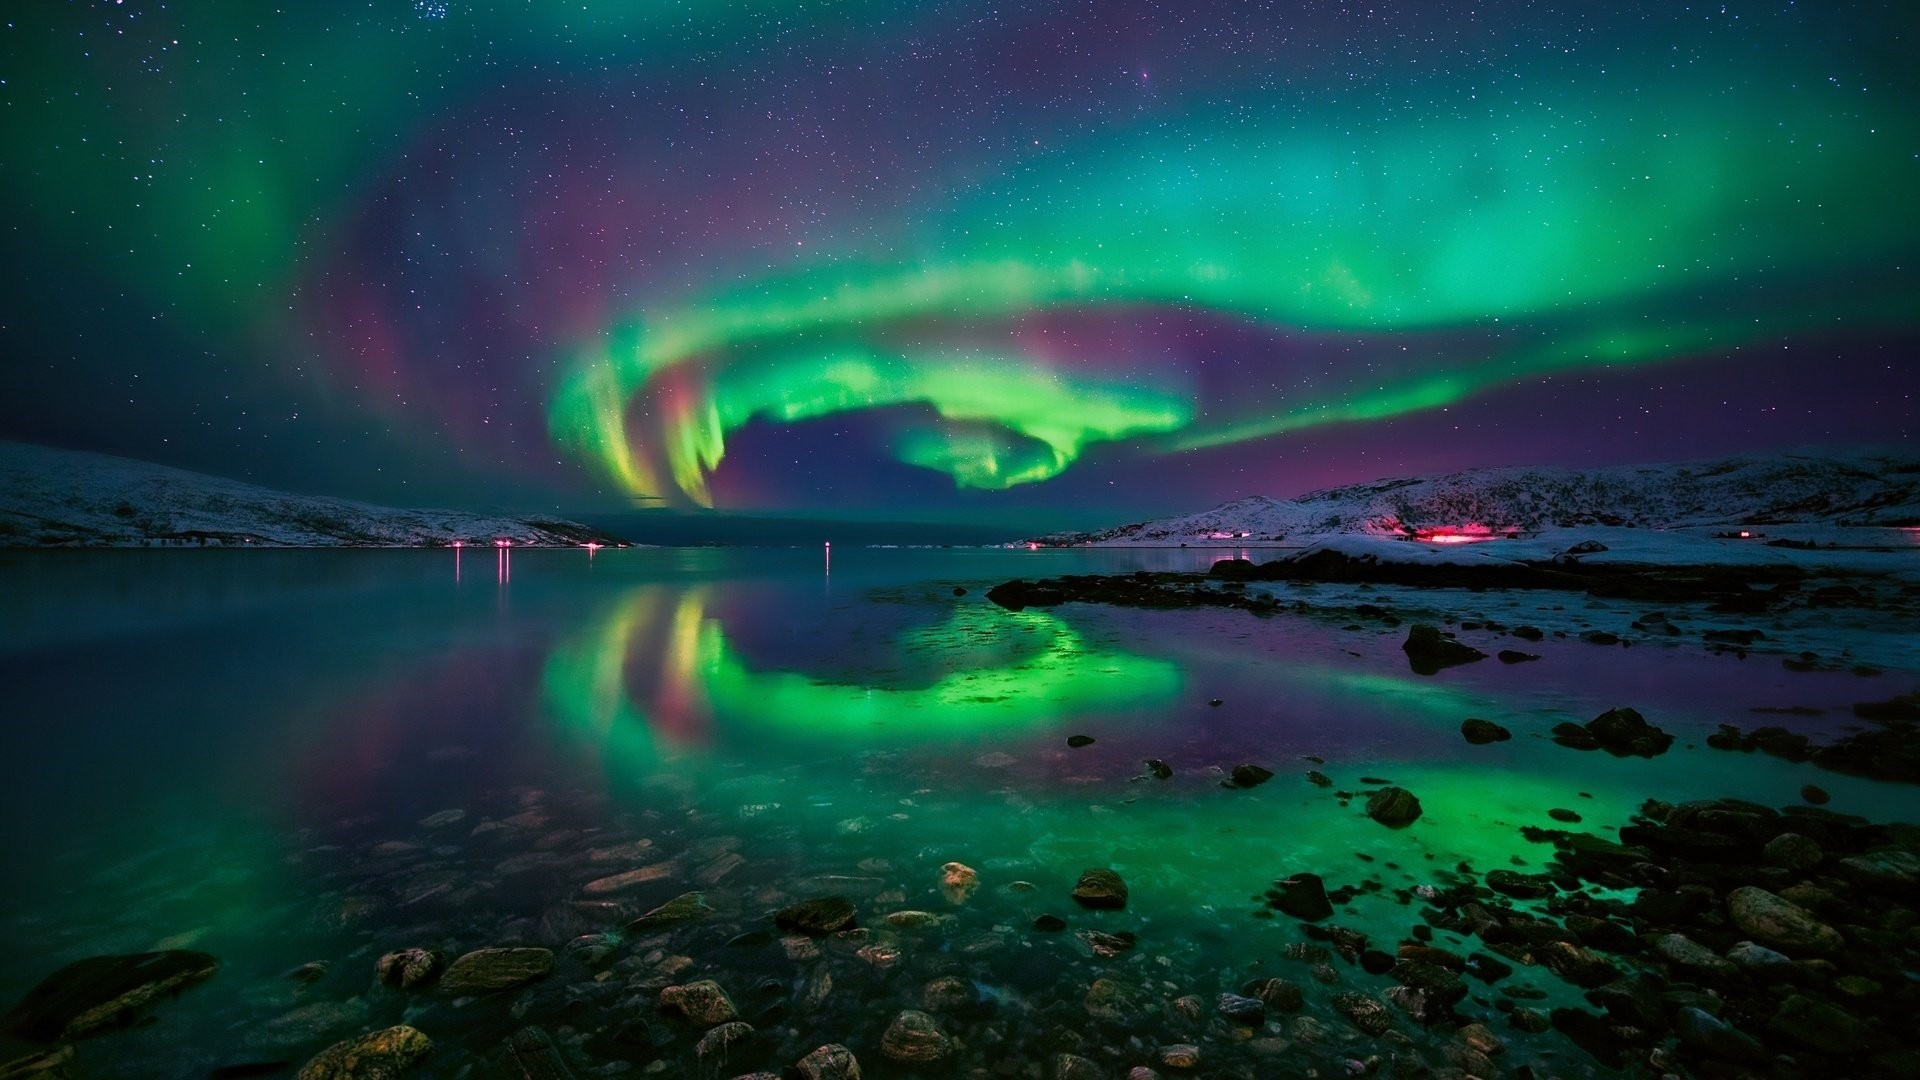 Aurora Borealis Free Wallpaper and Background